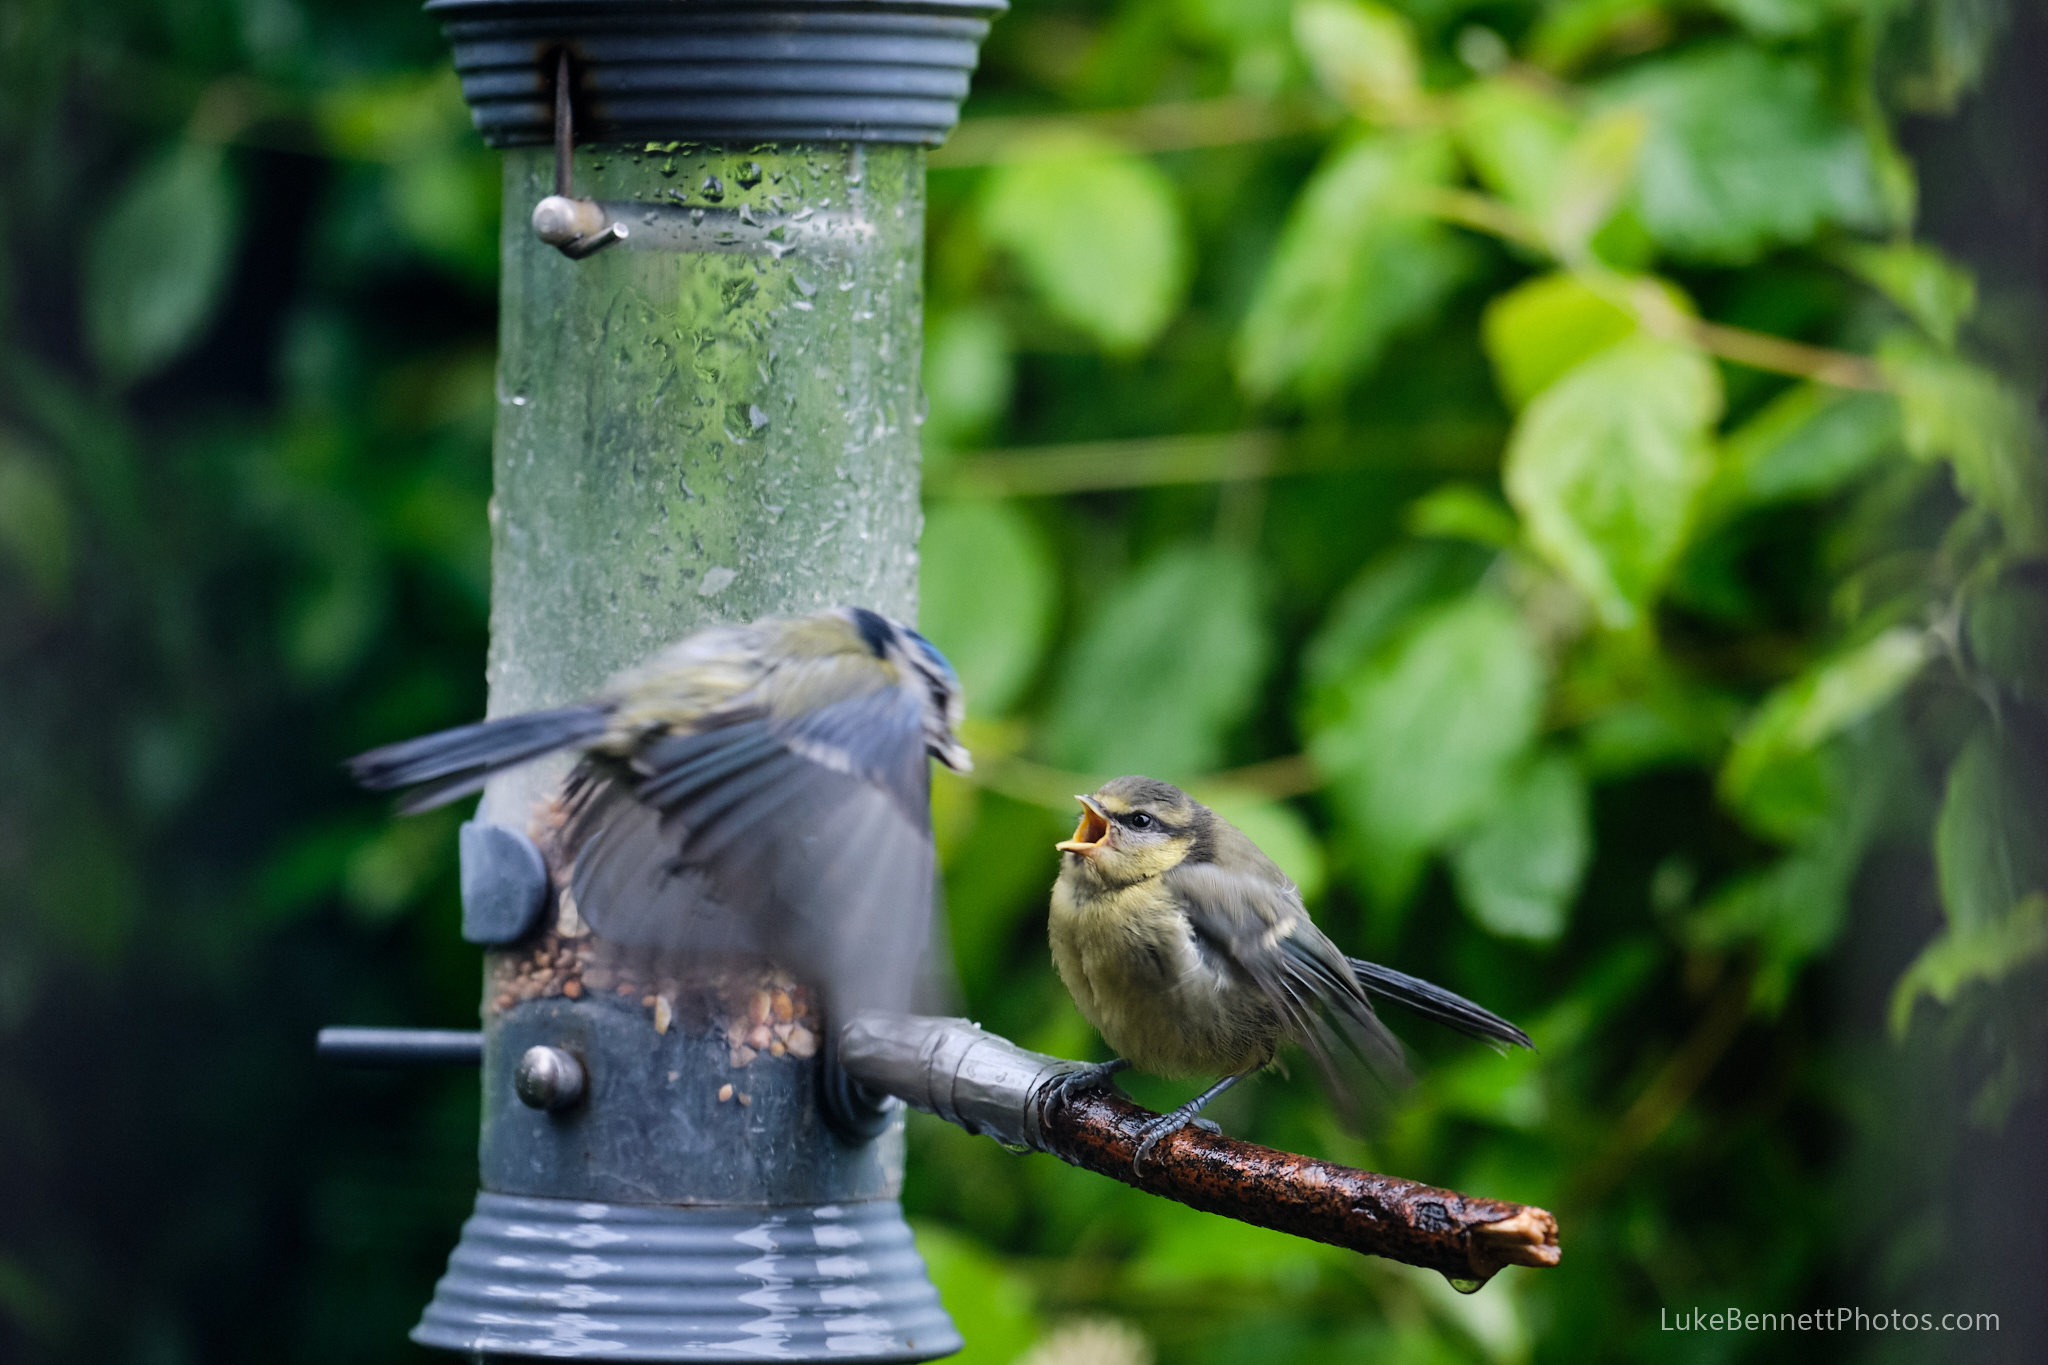 A young blue tit still being fed by their parent